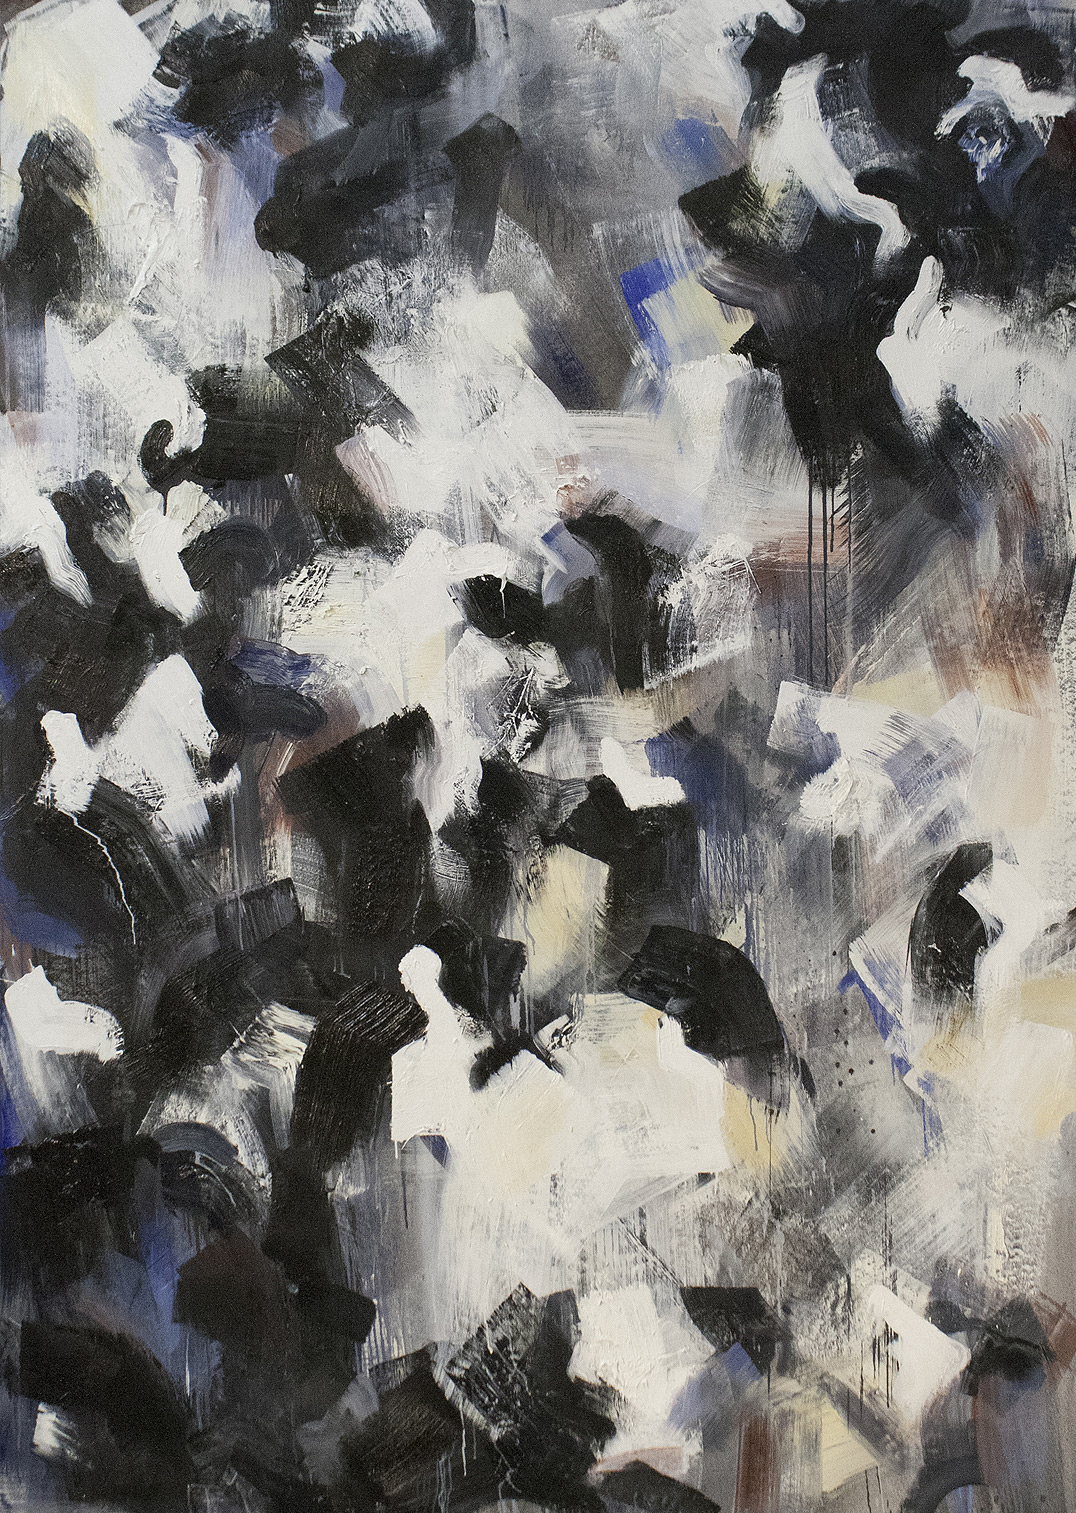 Brut #7 Oil on Canvas • 145 x 205 cm • 2014